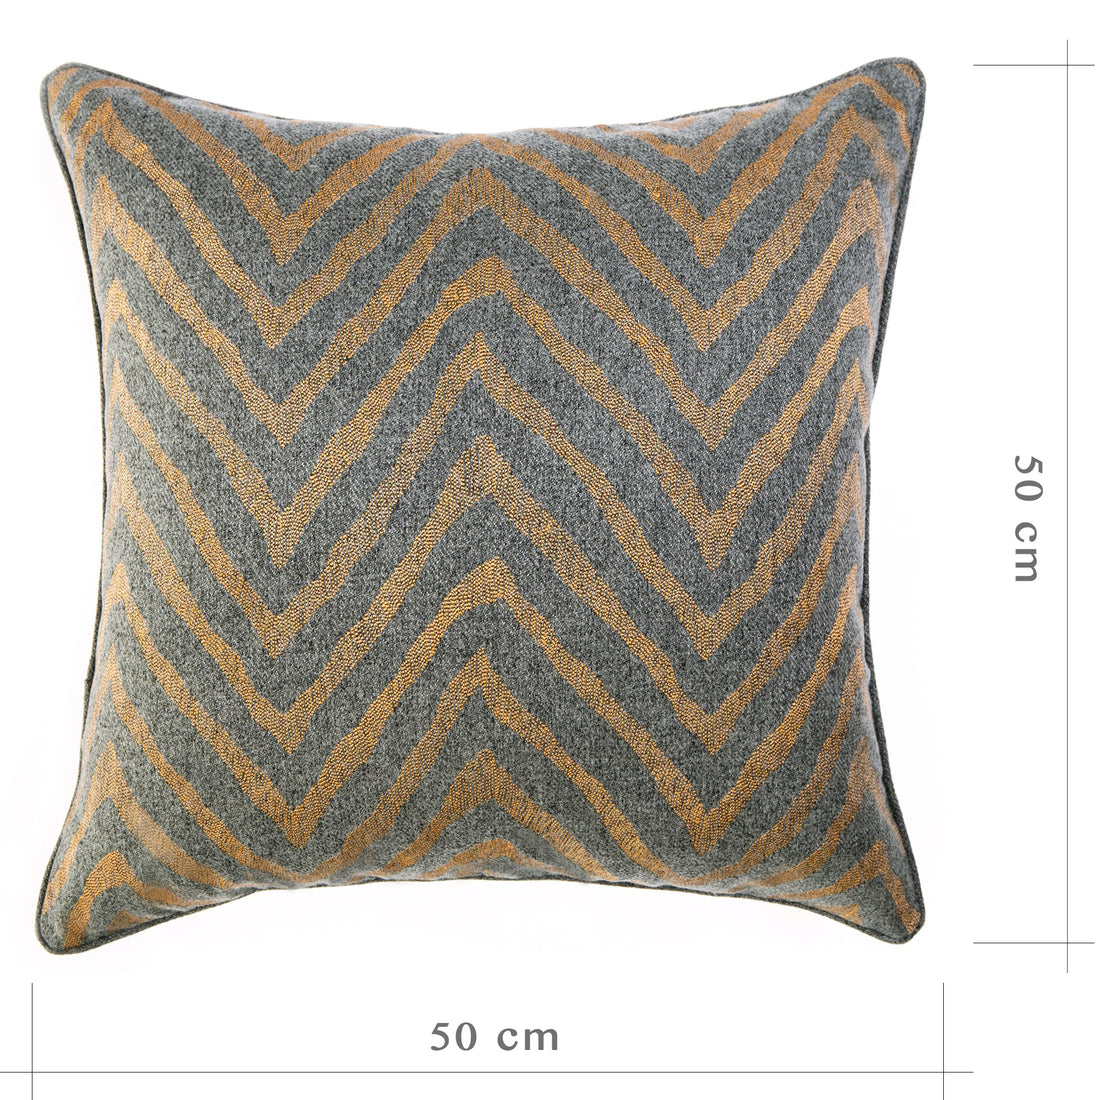 Adele Hodler cushion sizes